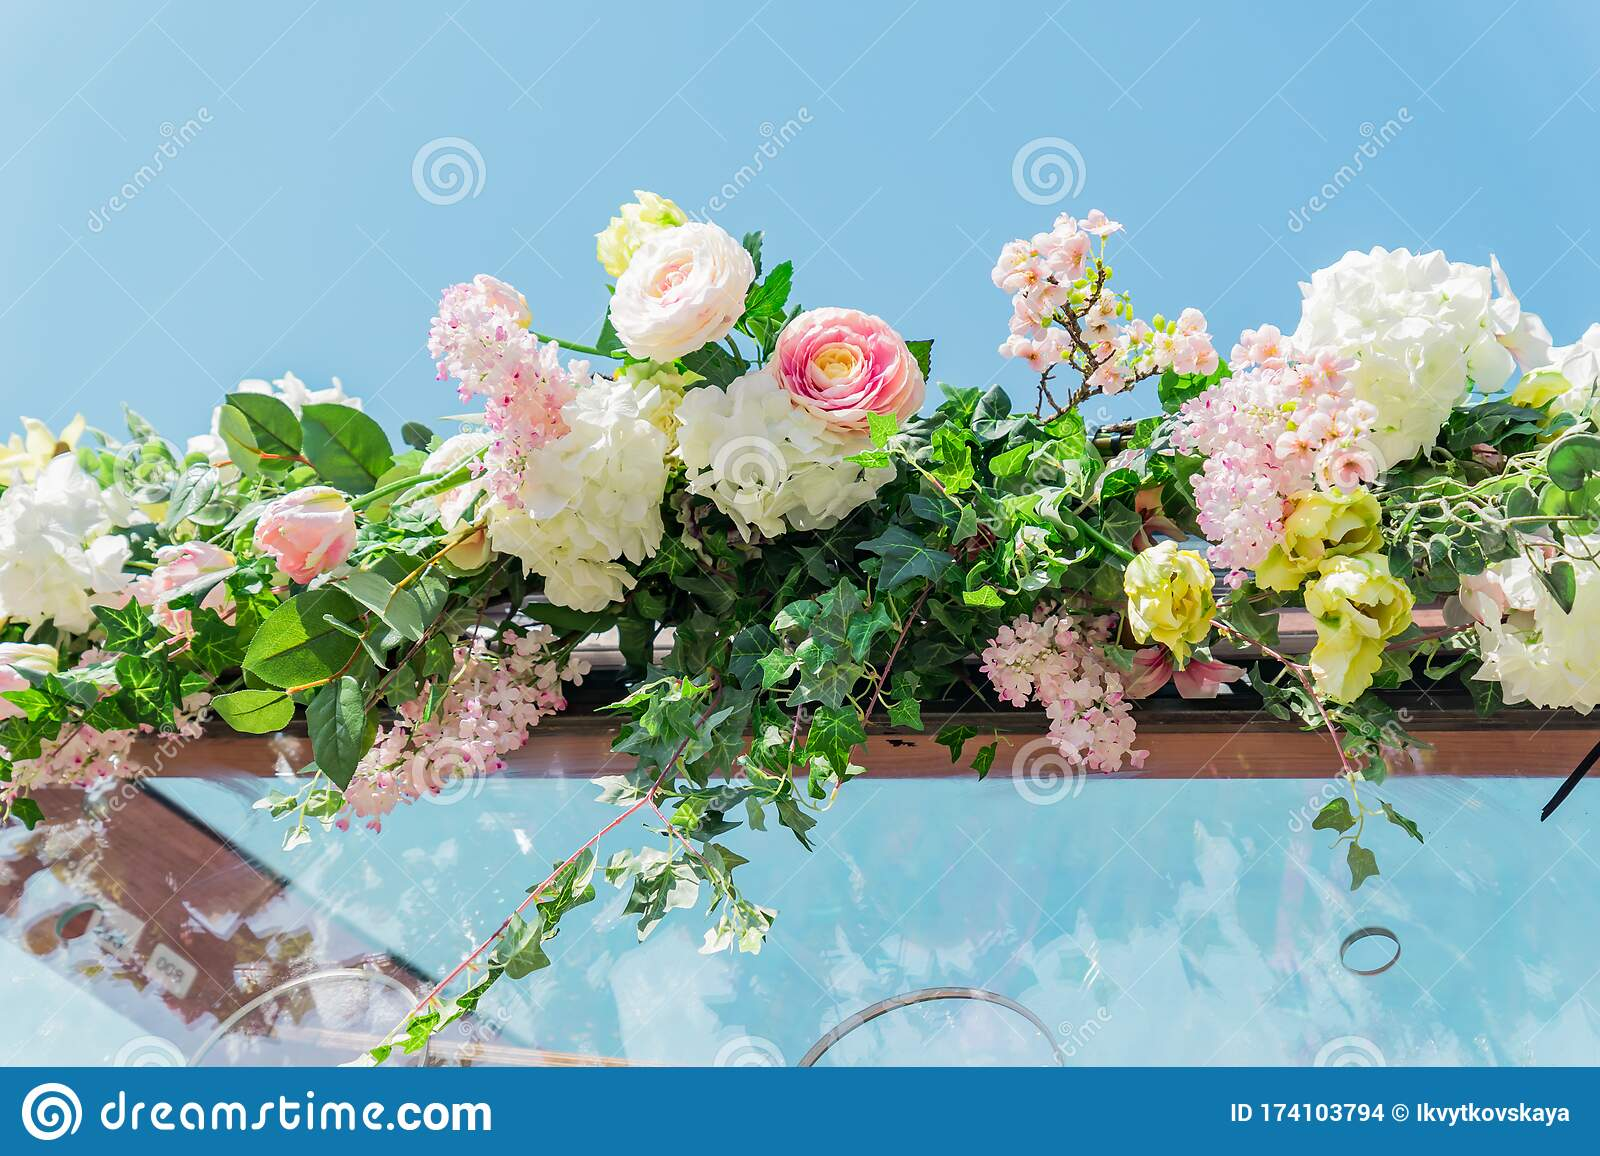 Artificial Flowers On Blue Sky Background Outdoors Street Decorations Close Up Stock Photo Image Of Artificial Detail 174103794